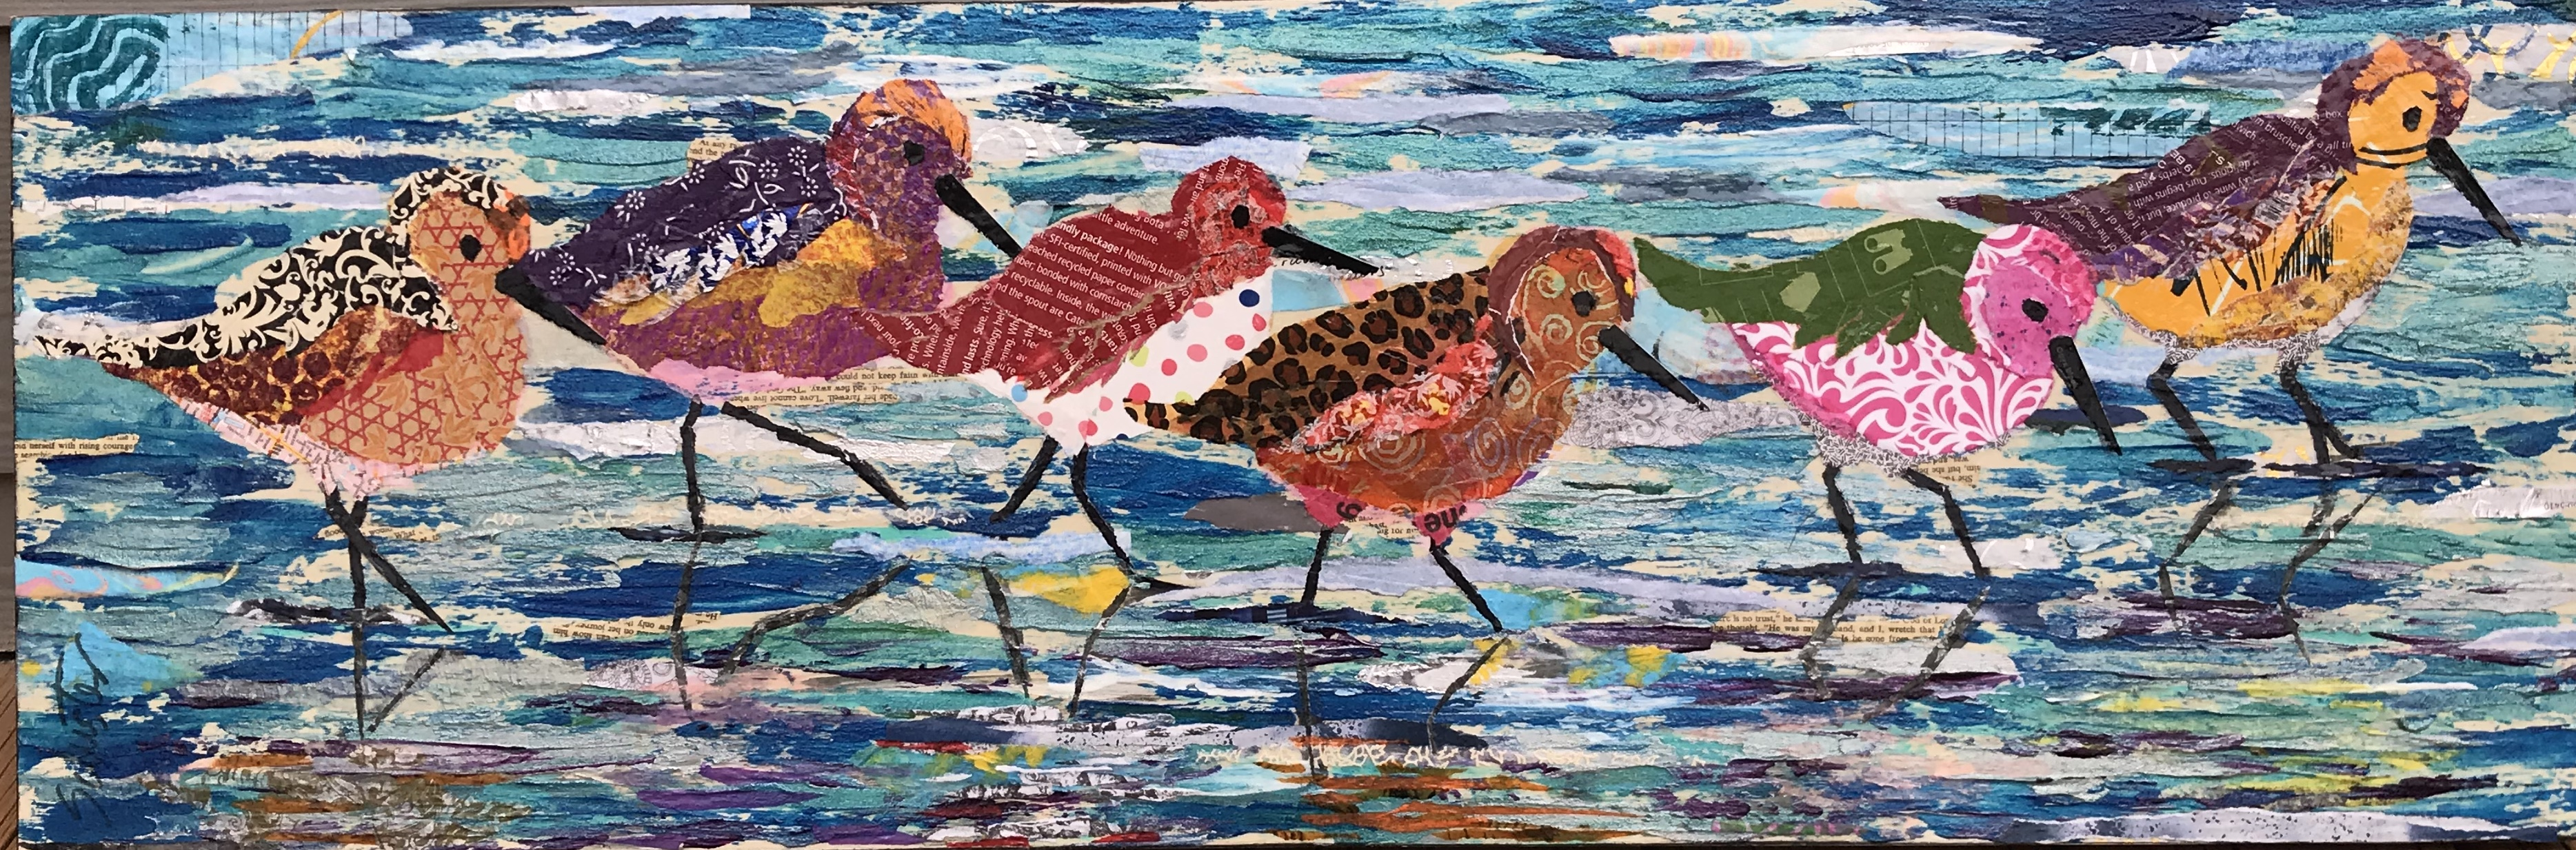 Sanderlings on the sea shore   $350